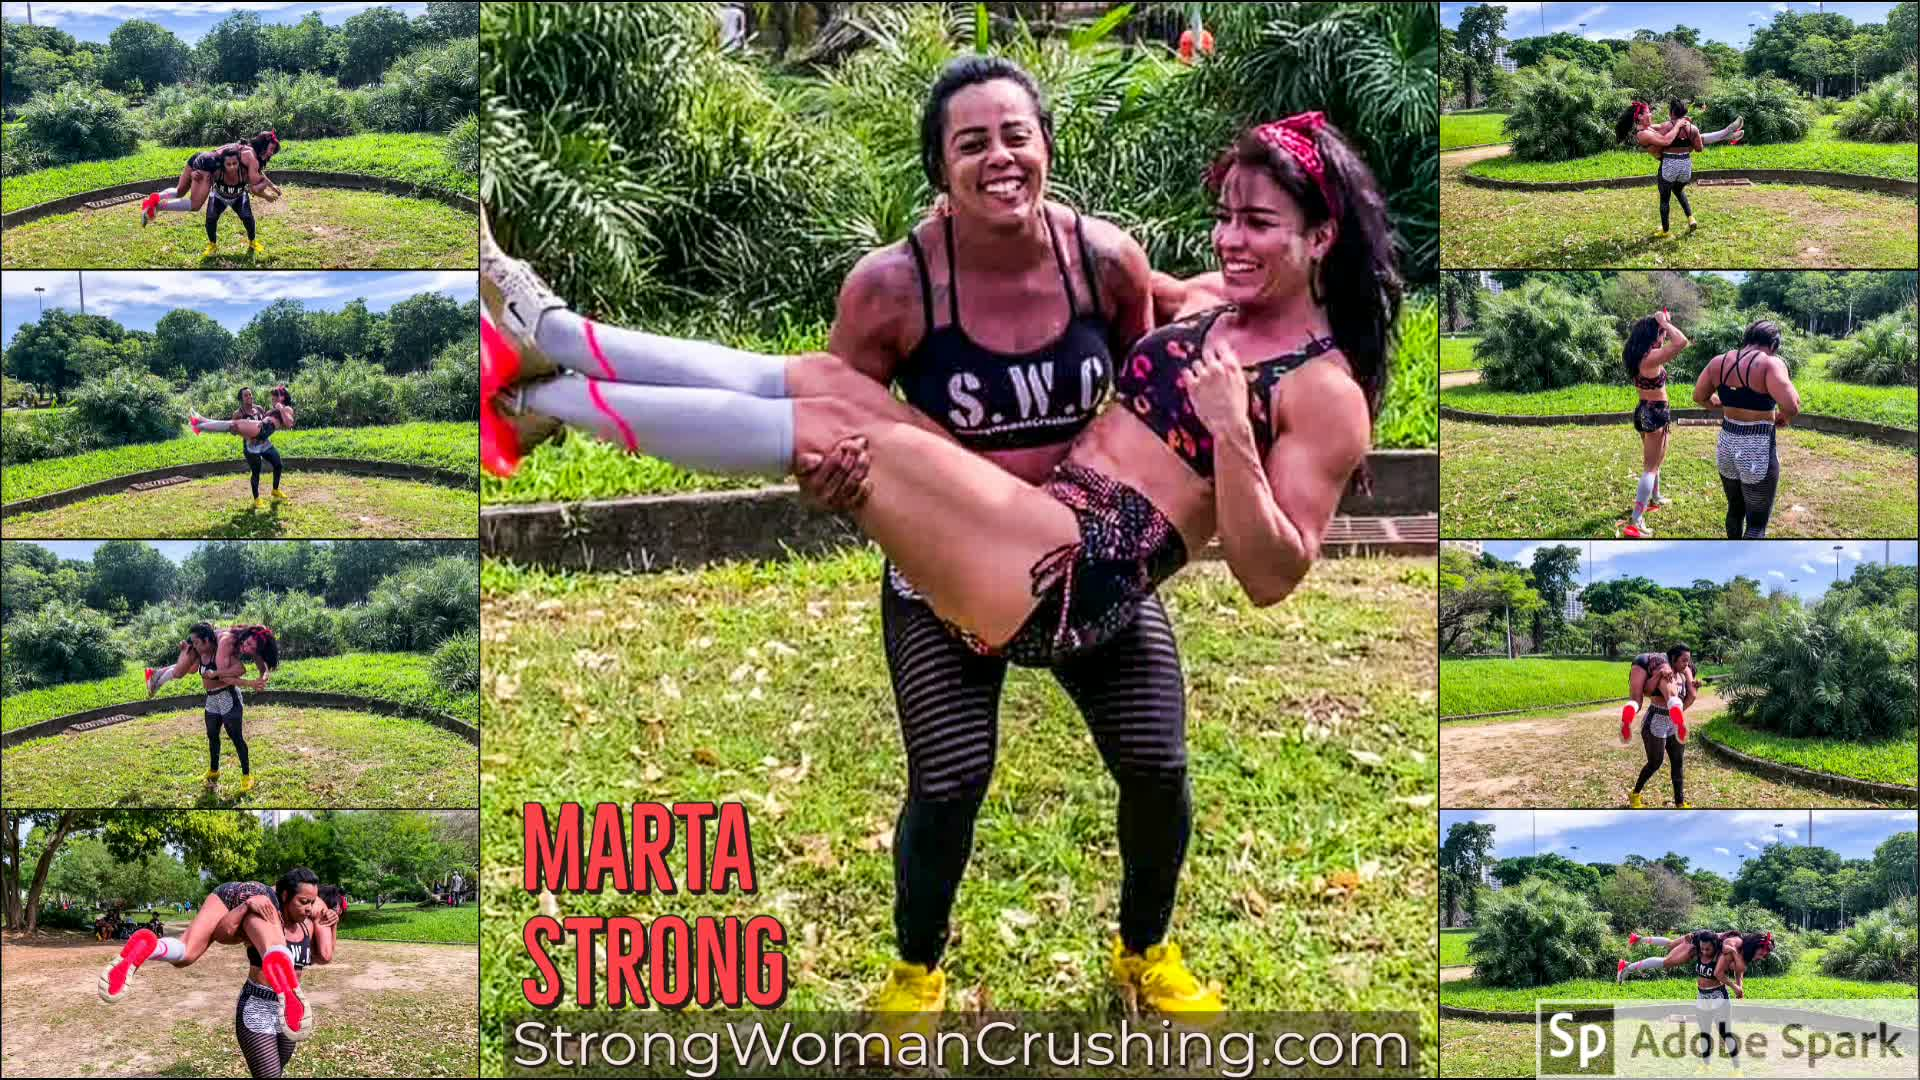 Martastrong lift and carry | Strong Woman Crushing